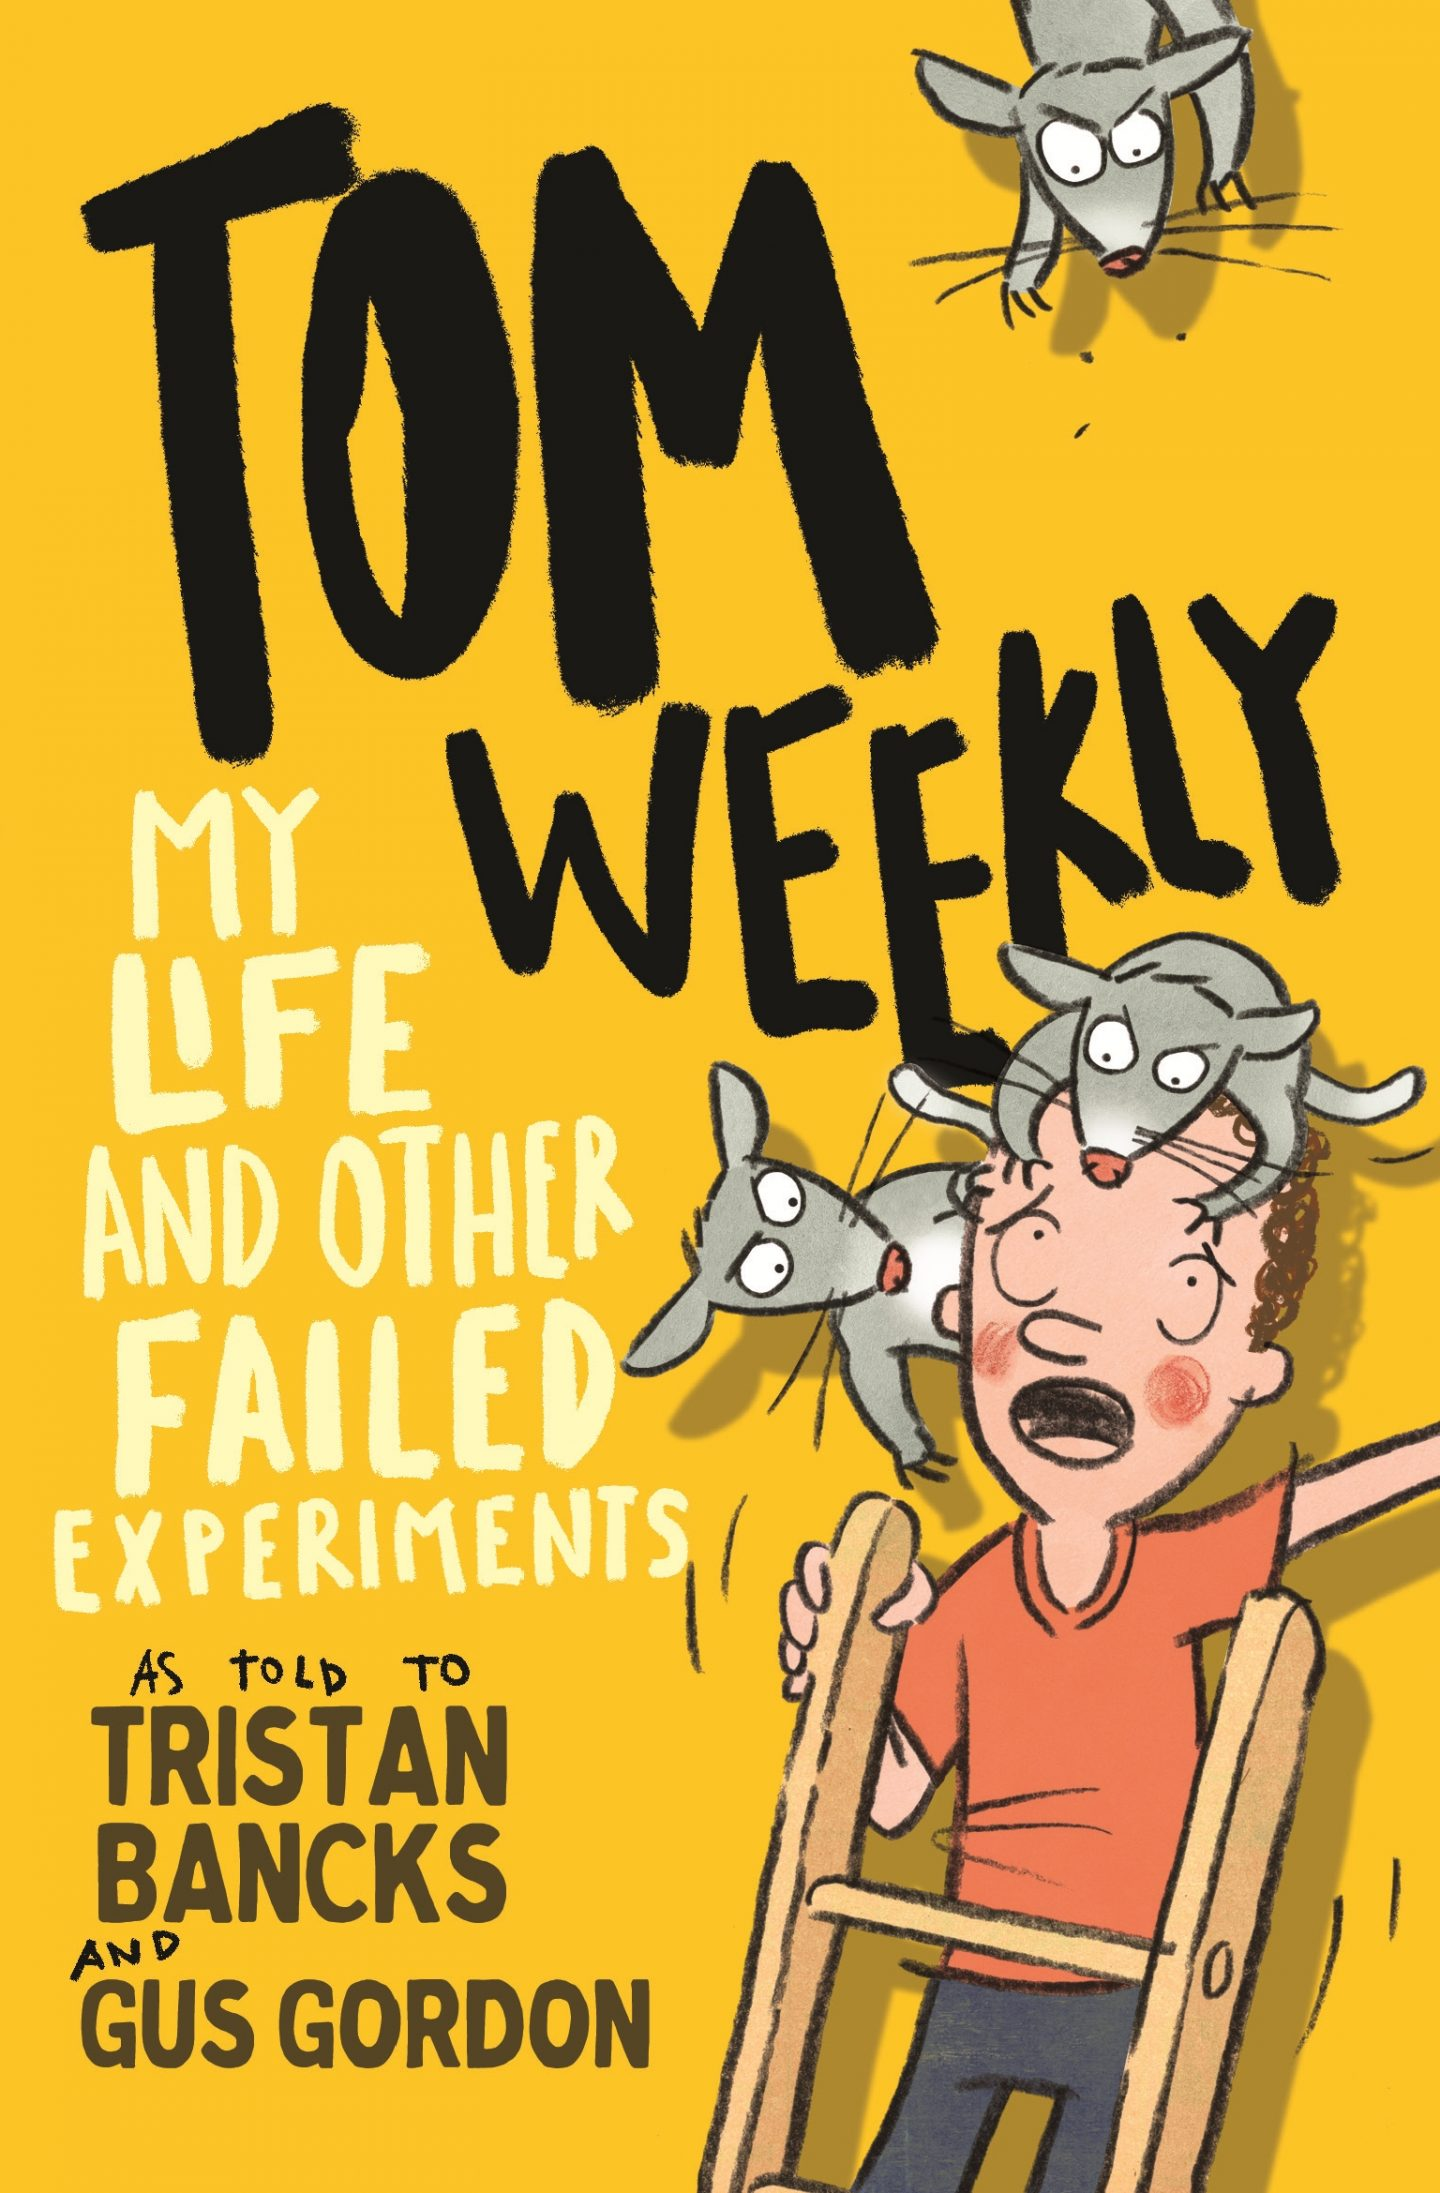 Tom Weekly - My Life & Other Failed Experiments